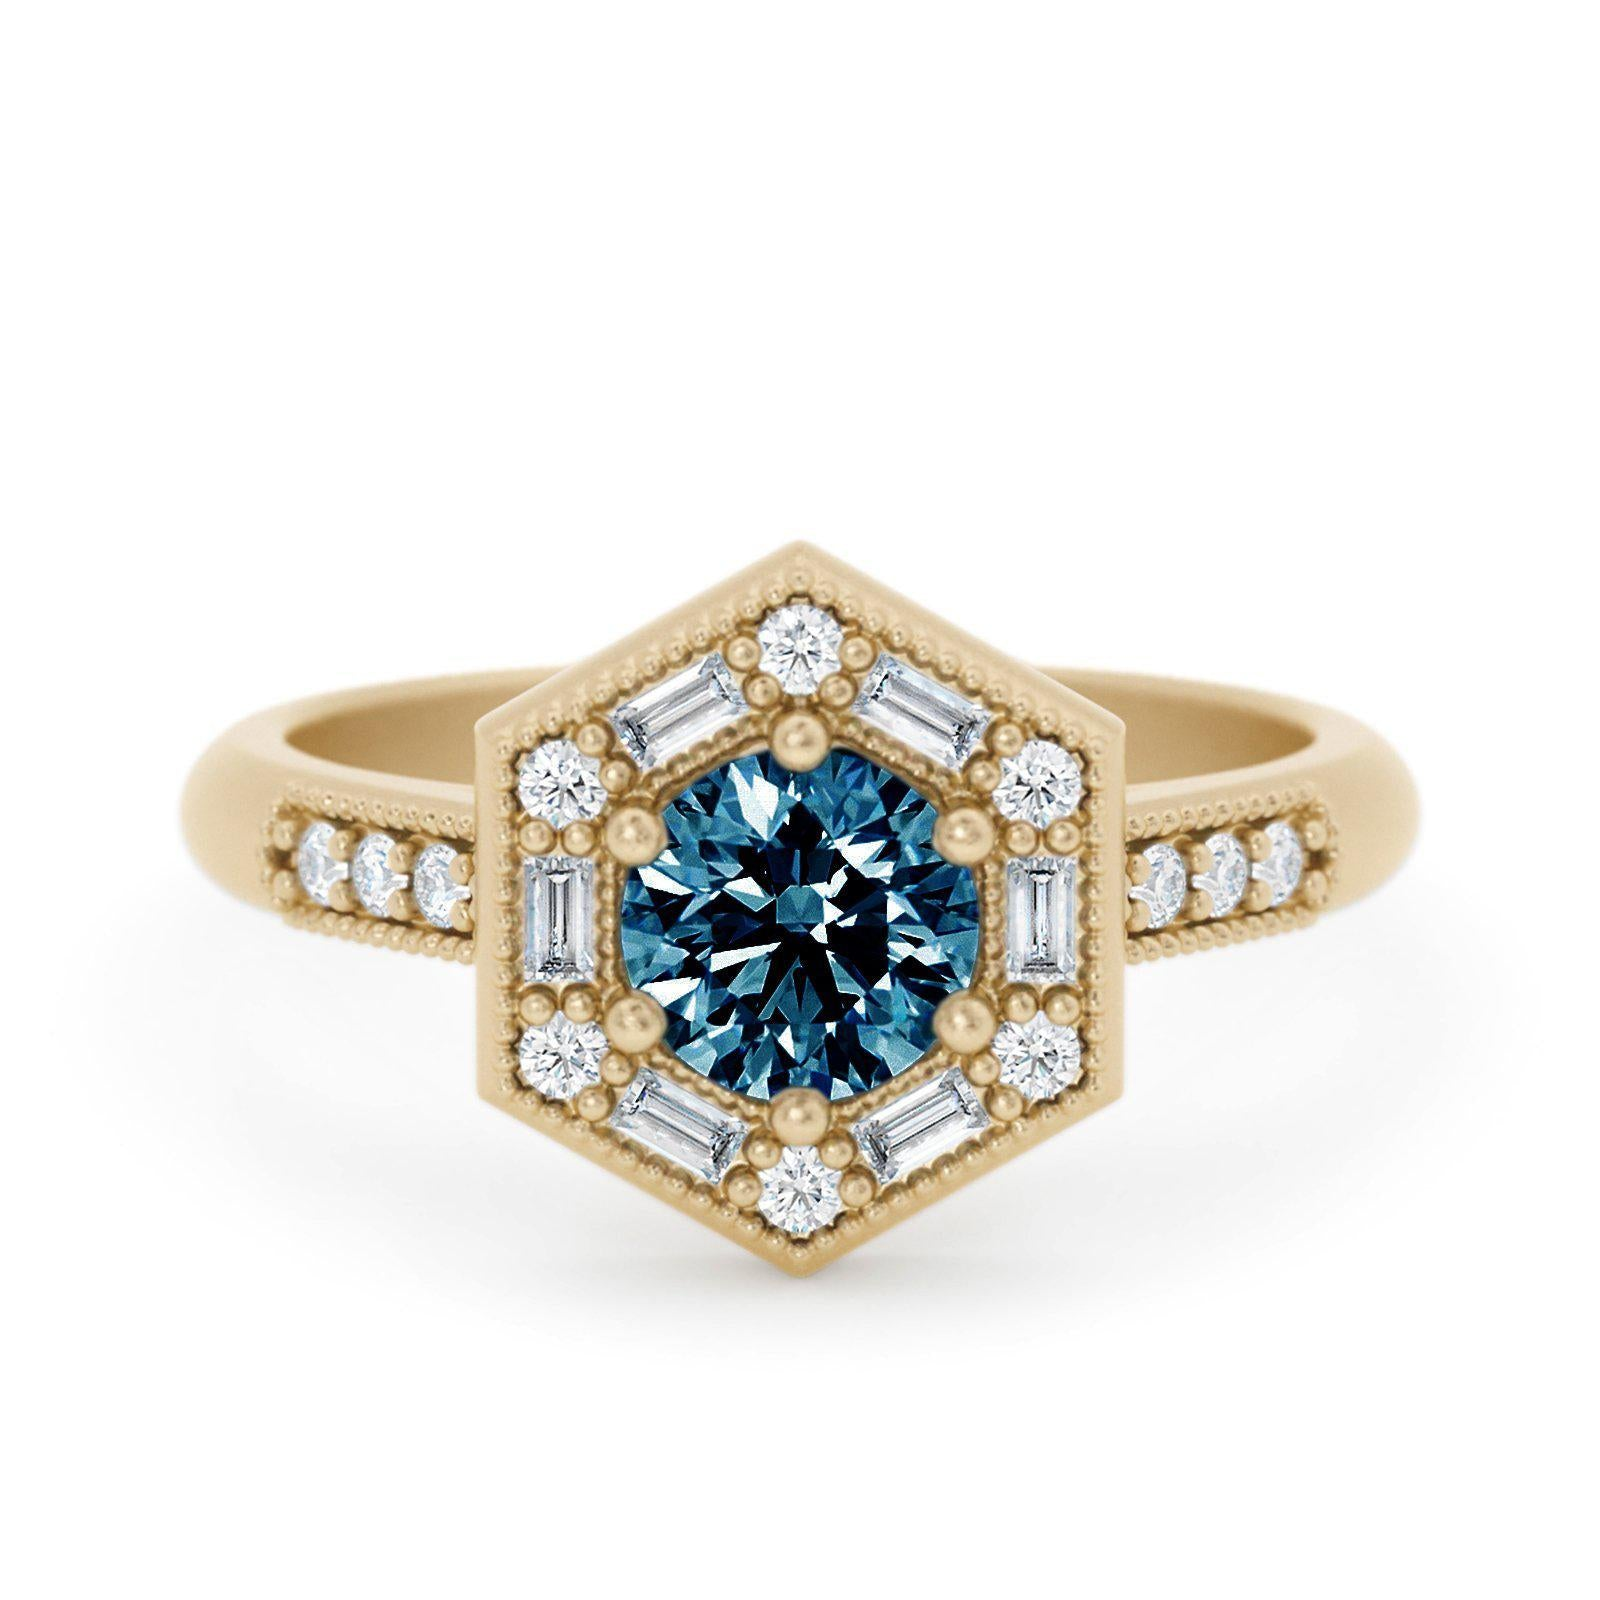 Lorelei Art Deco Montana Sapphire Ring with Baguettes